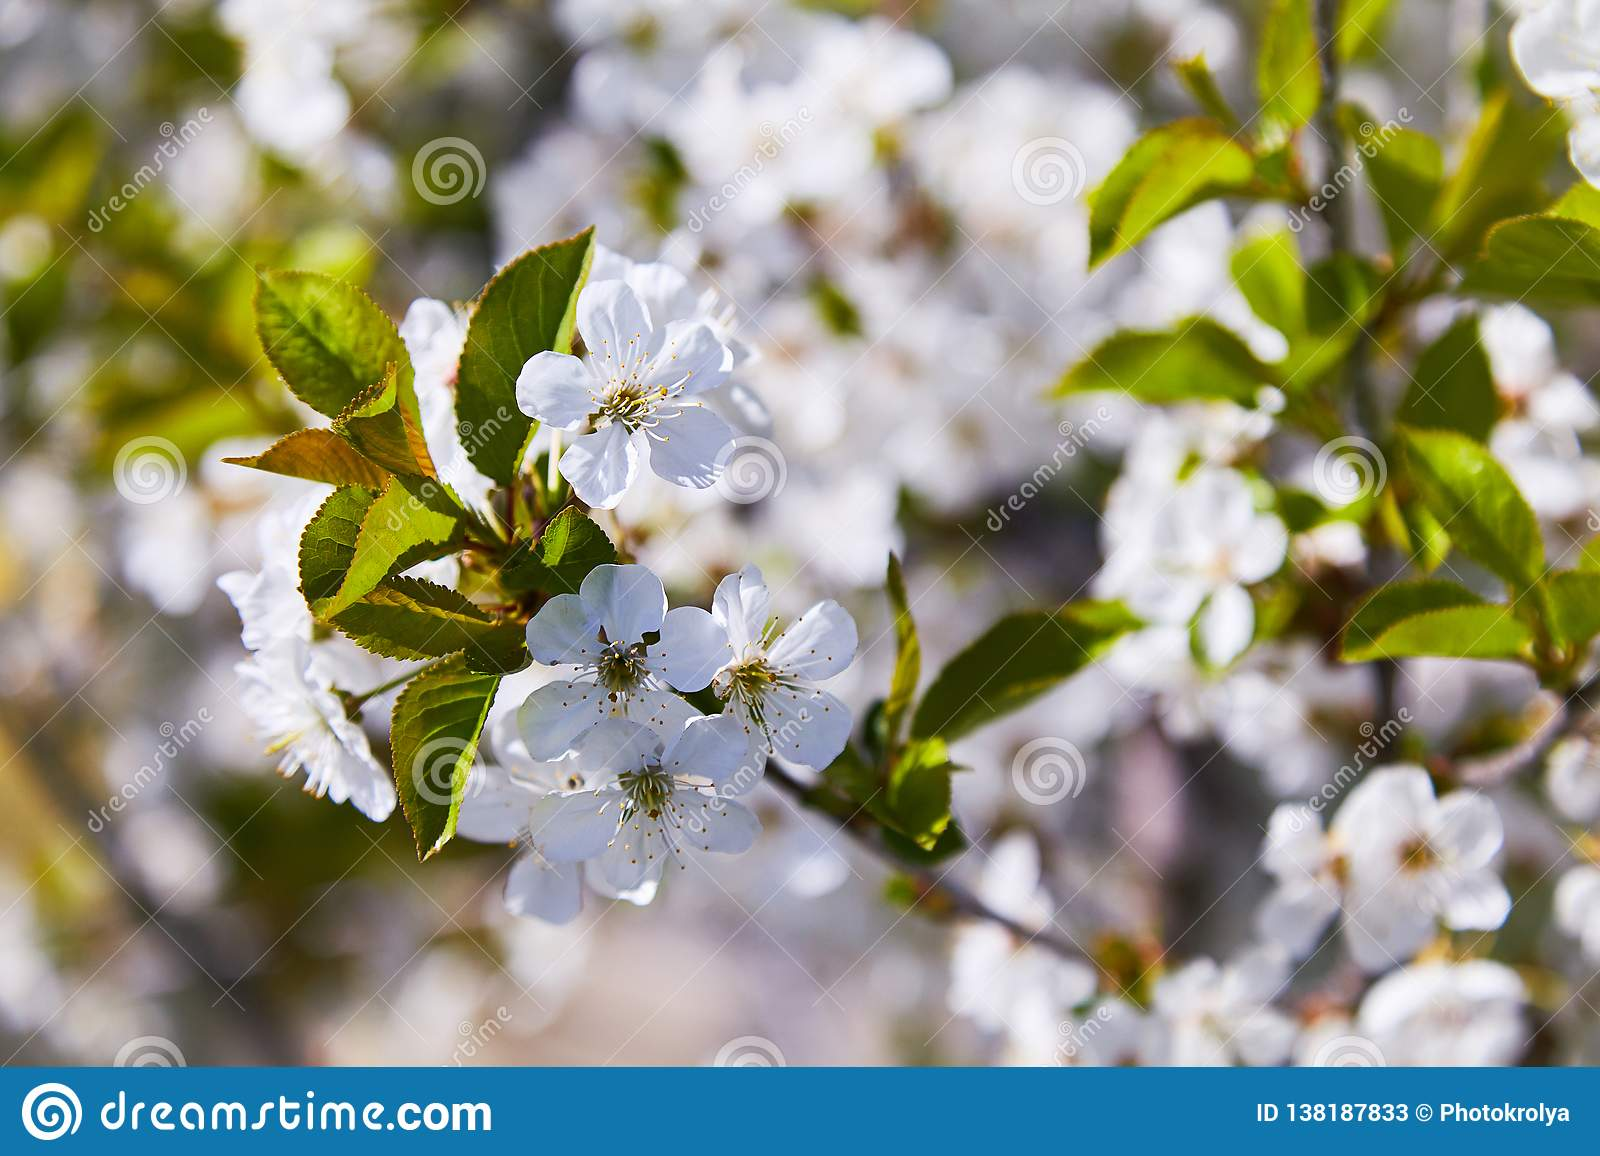 Flowering fruit trees on a spring day